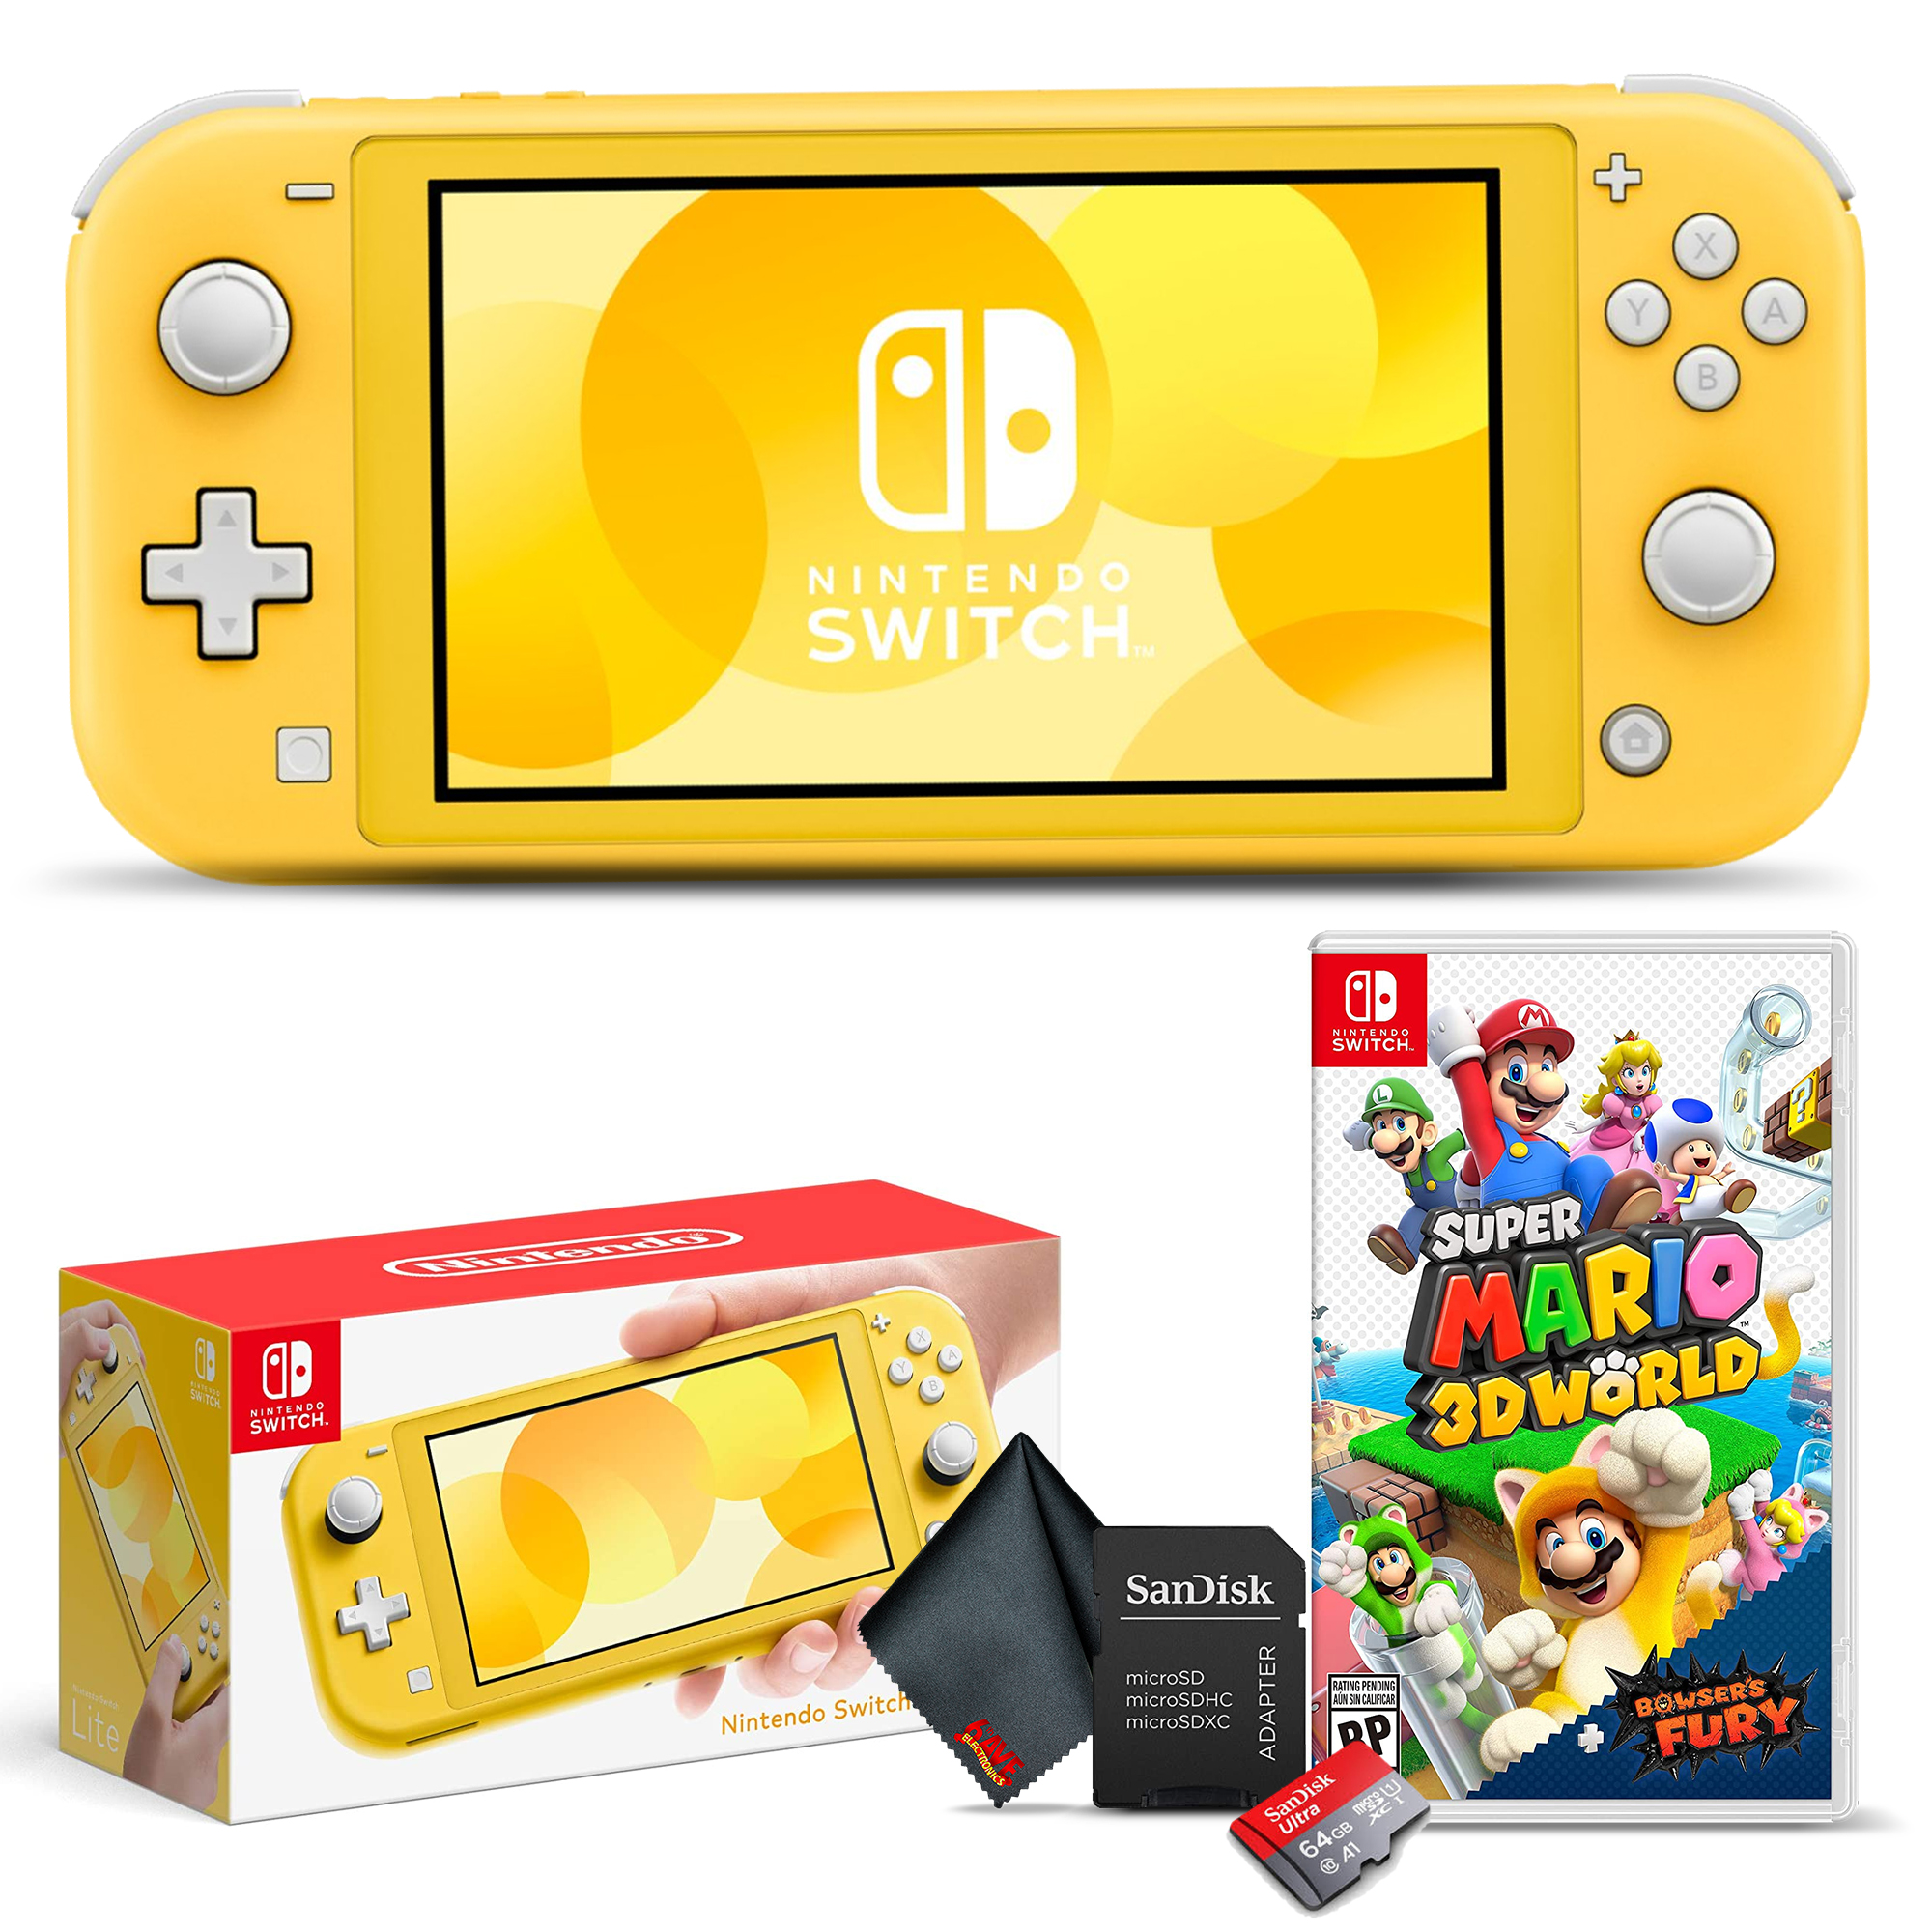 miniature 29 - Nintendo Switch Lite Gaming Console Bundle with Super Mario 3D World + Bowser's